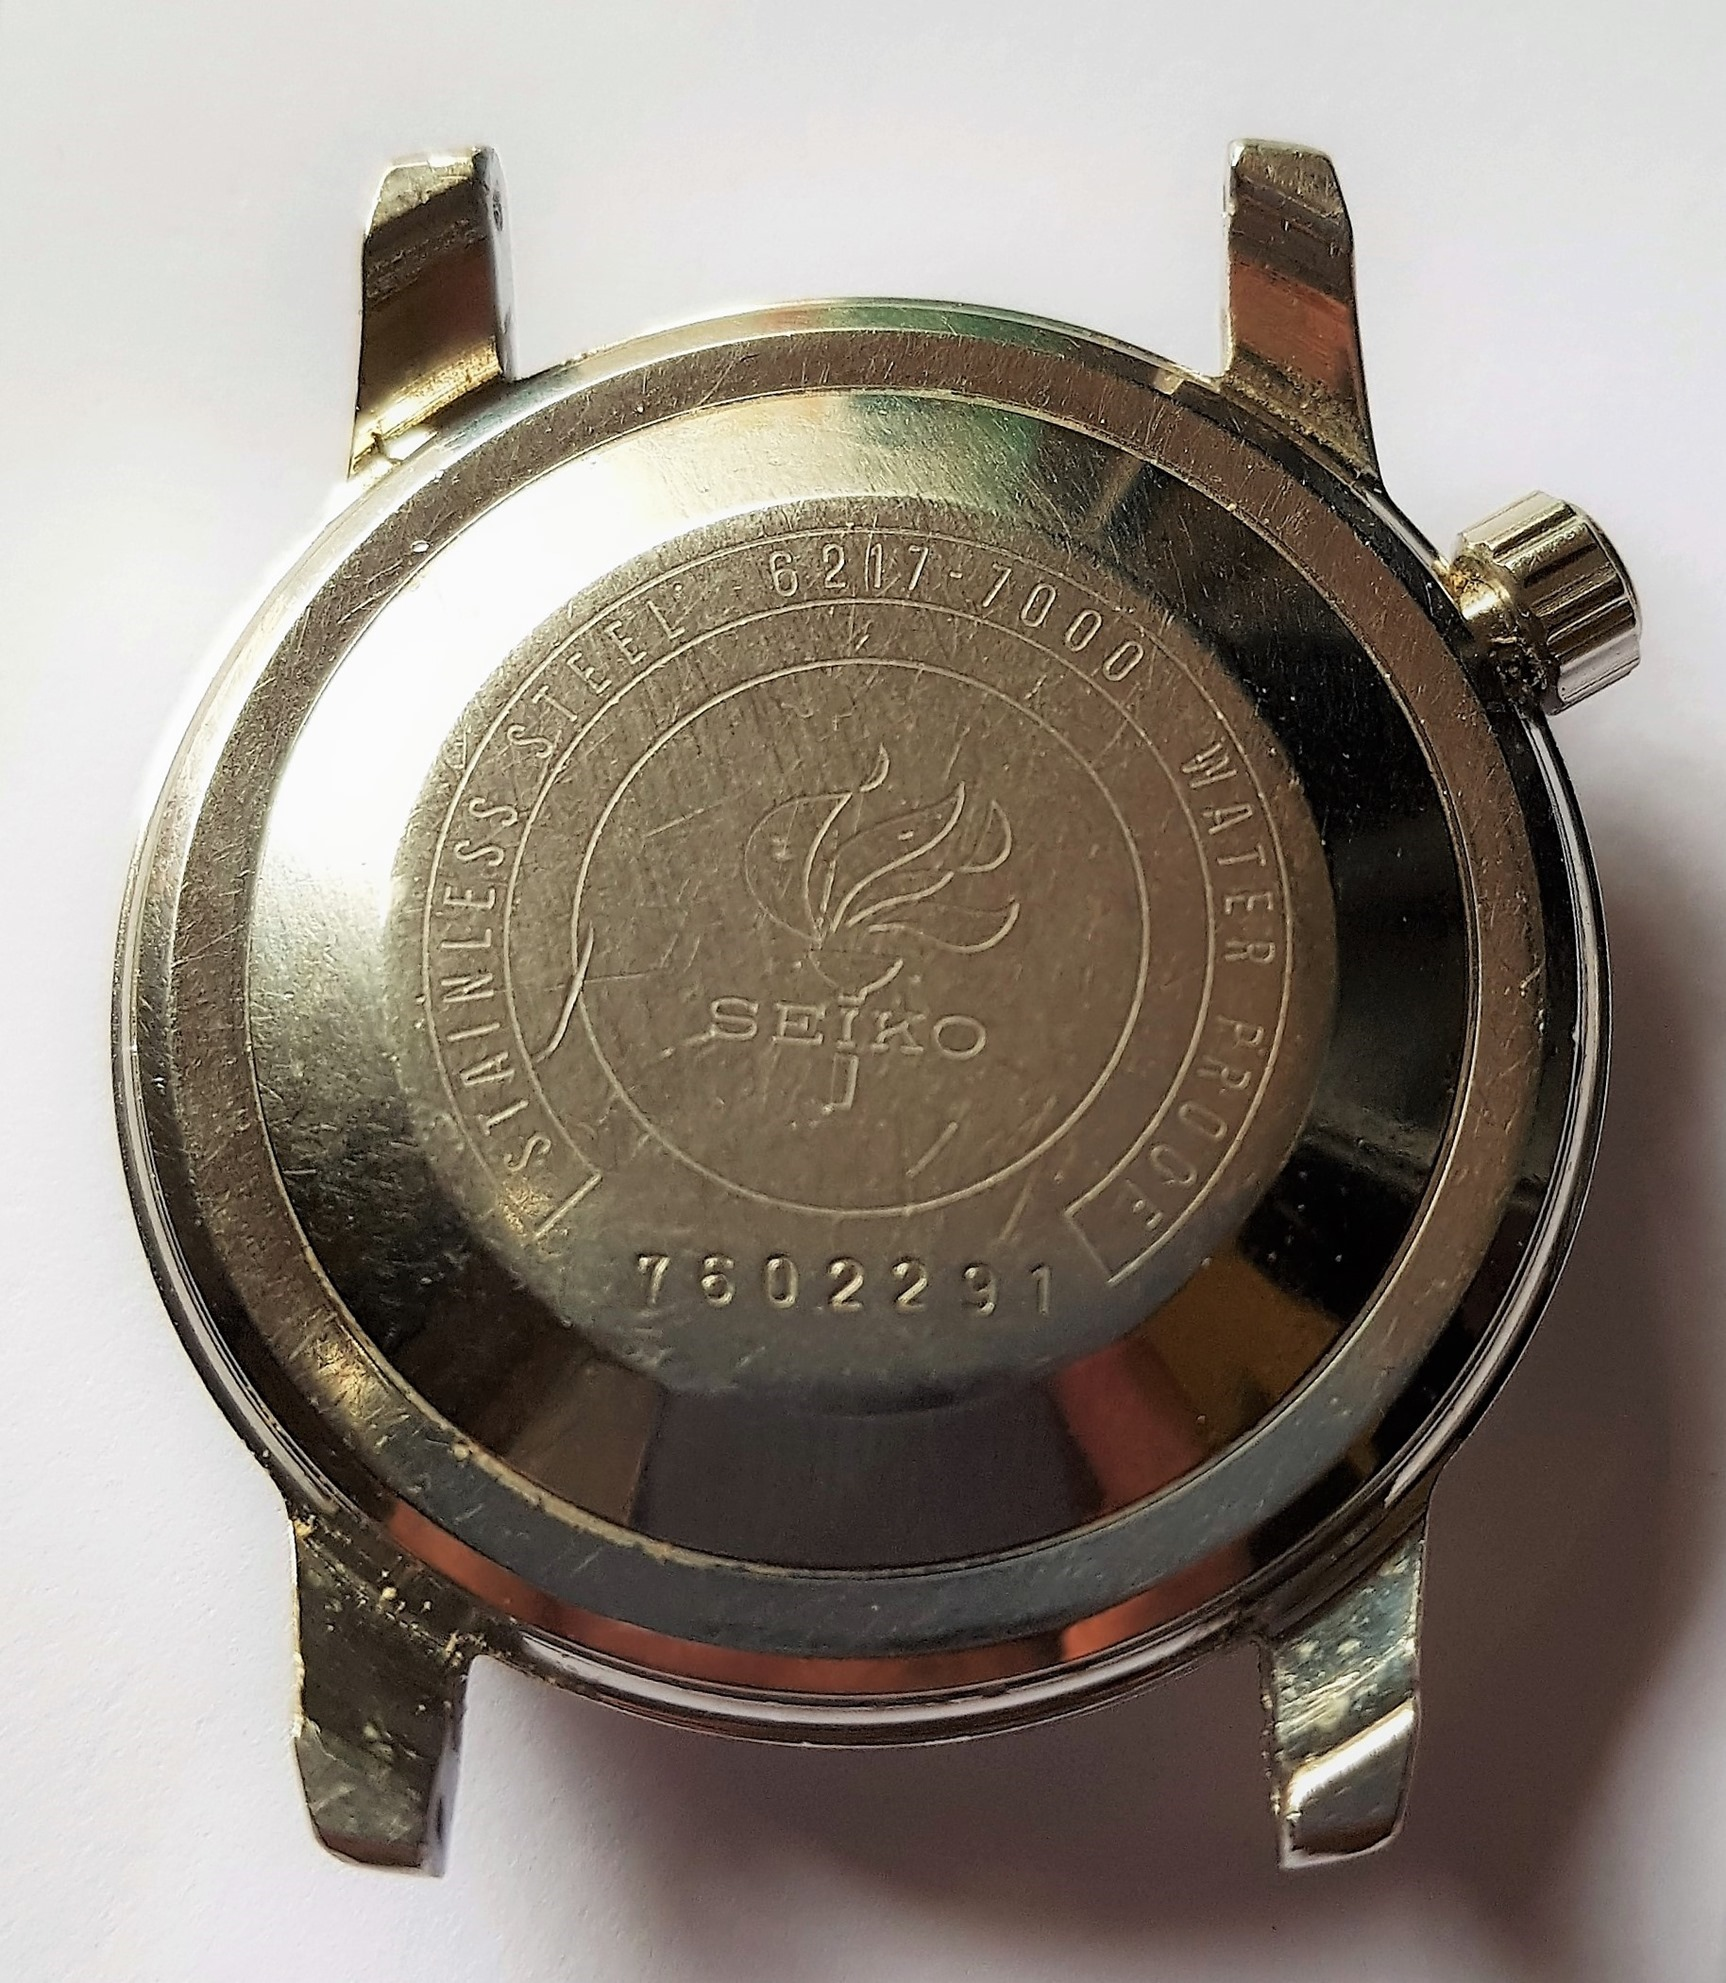 Seiko 6217-7000 World Time Olympic case back